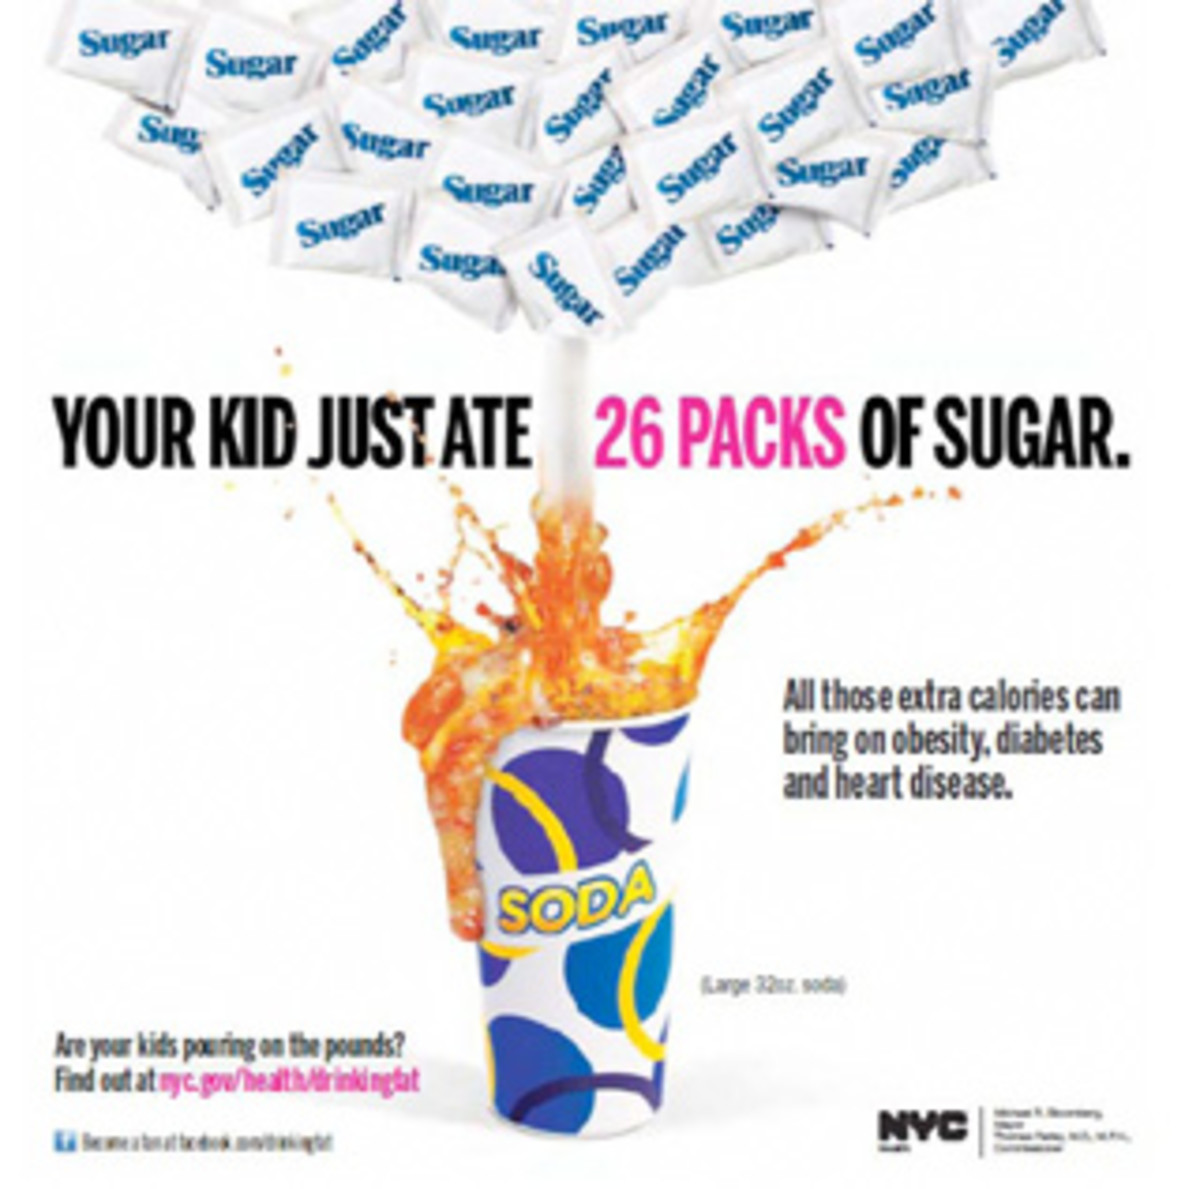 Calorie Poster - Sugar and Soda Pop